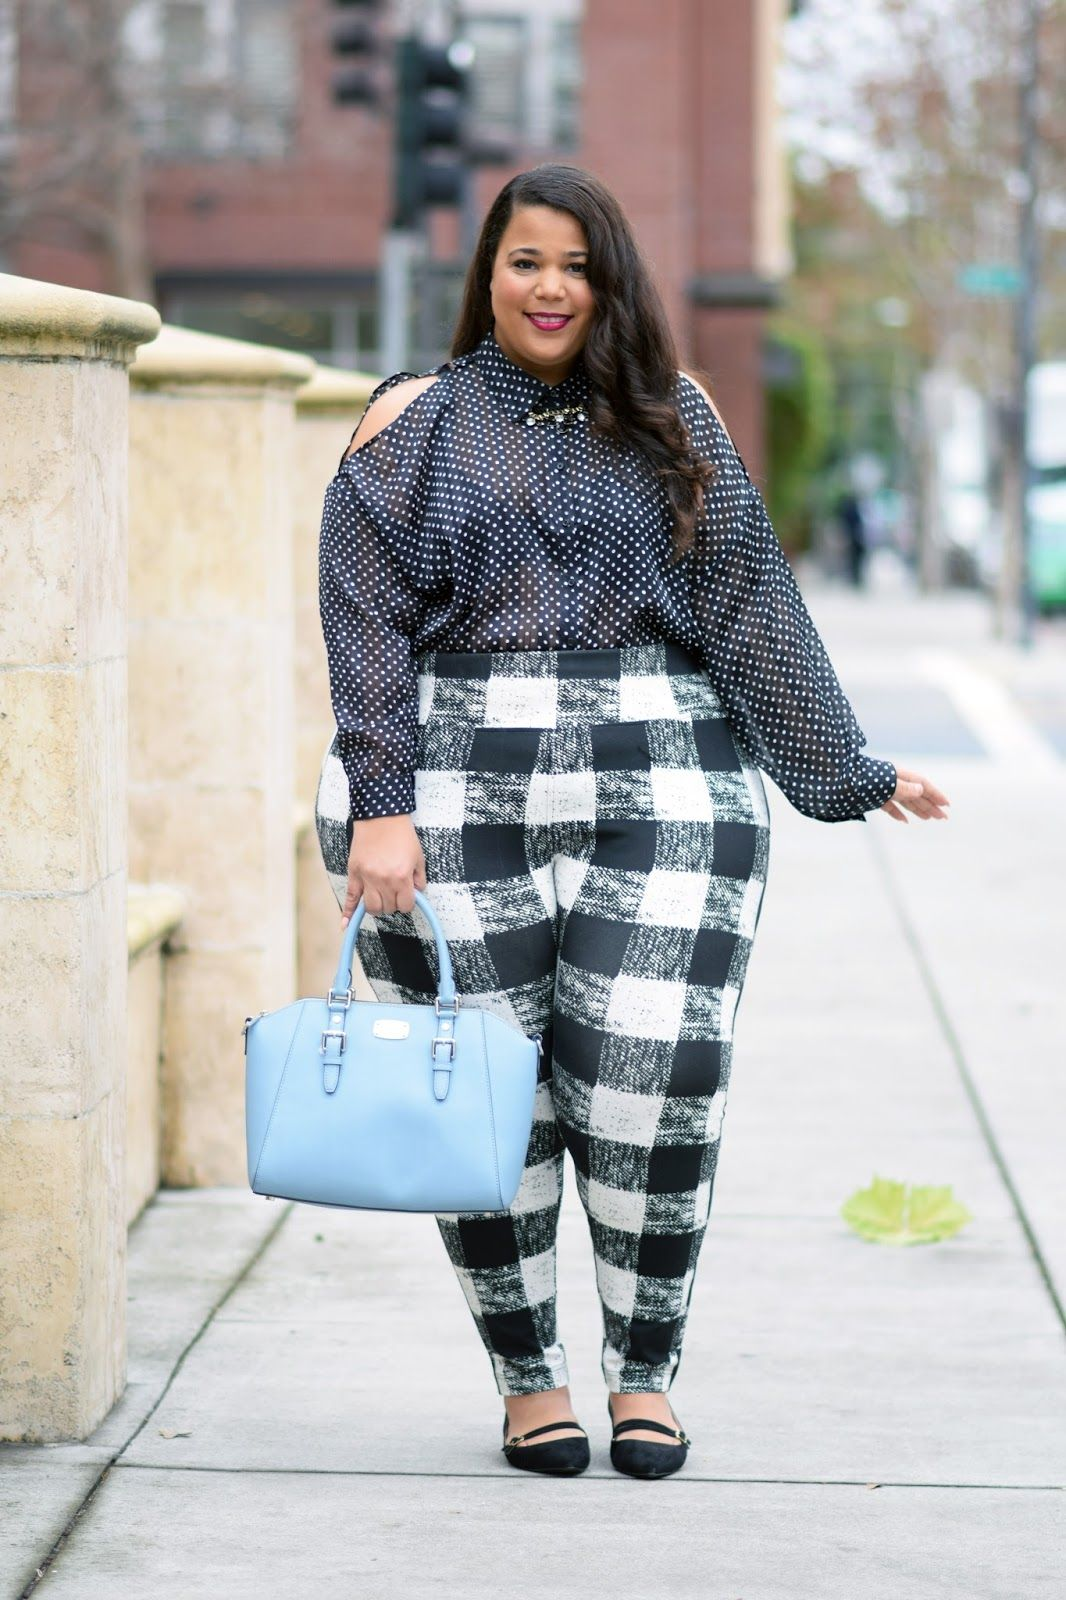 BLOG UPDATE: Your Style Your Choice - Tuck In or Tuck Out | My ...